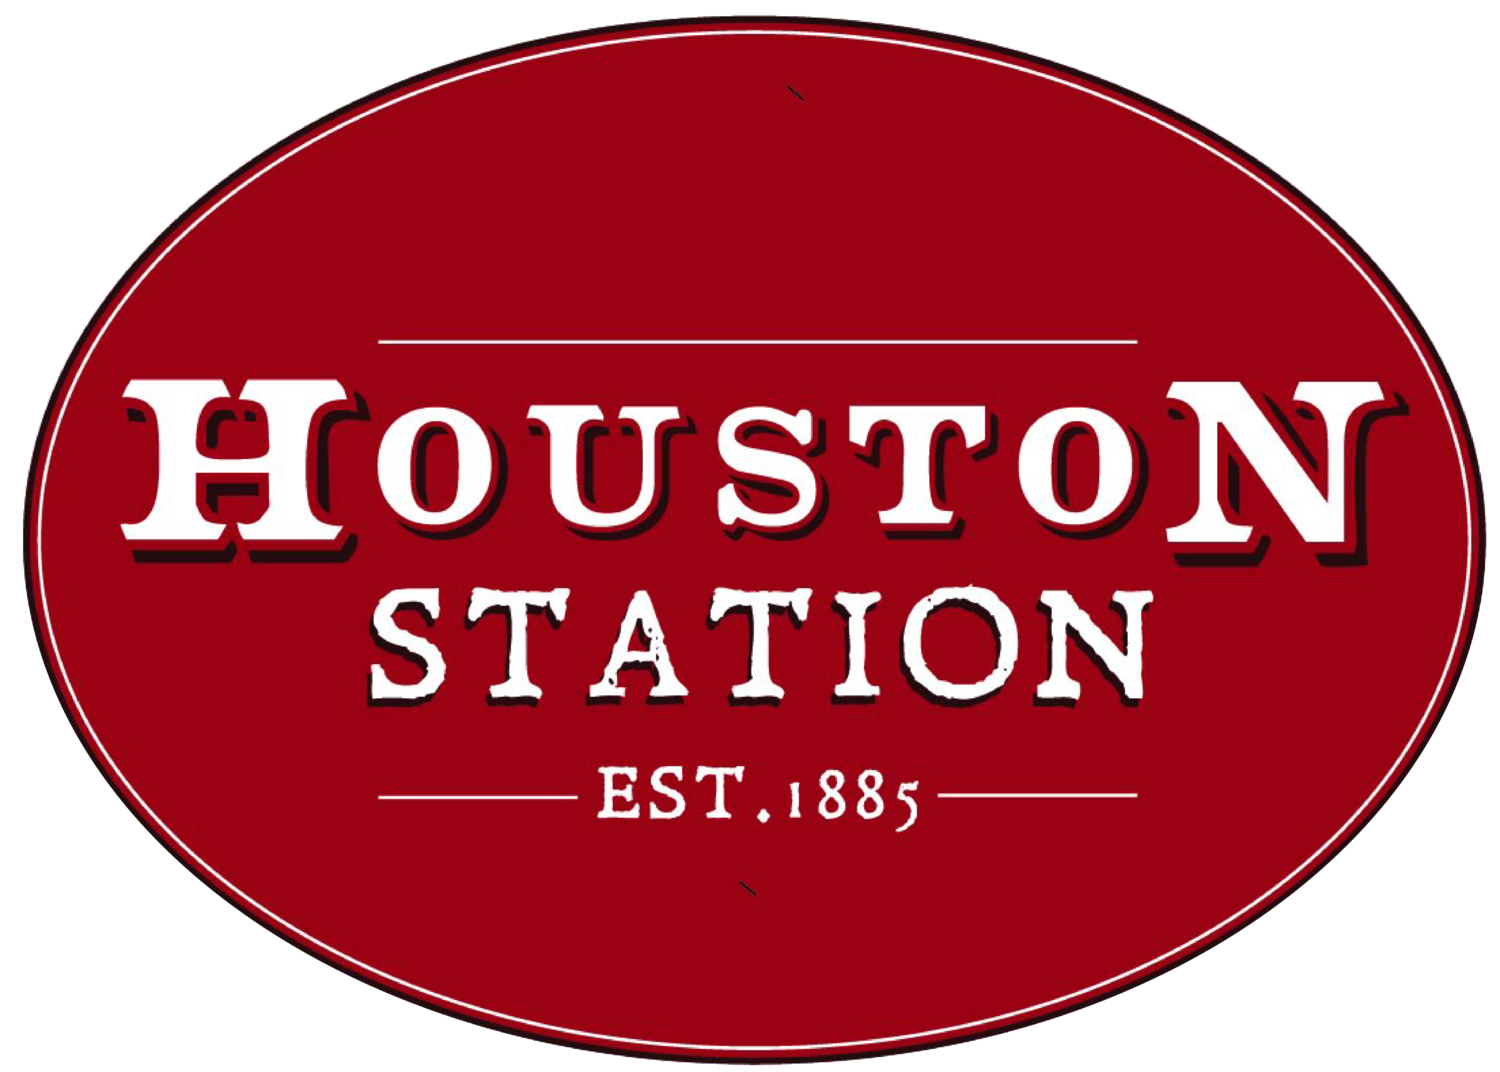 Houston Station